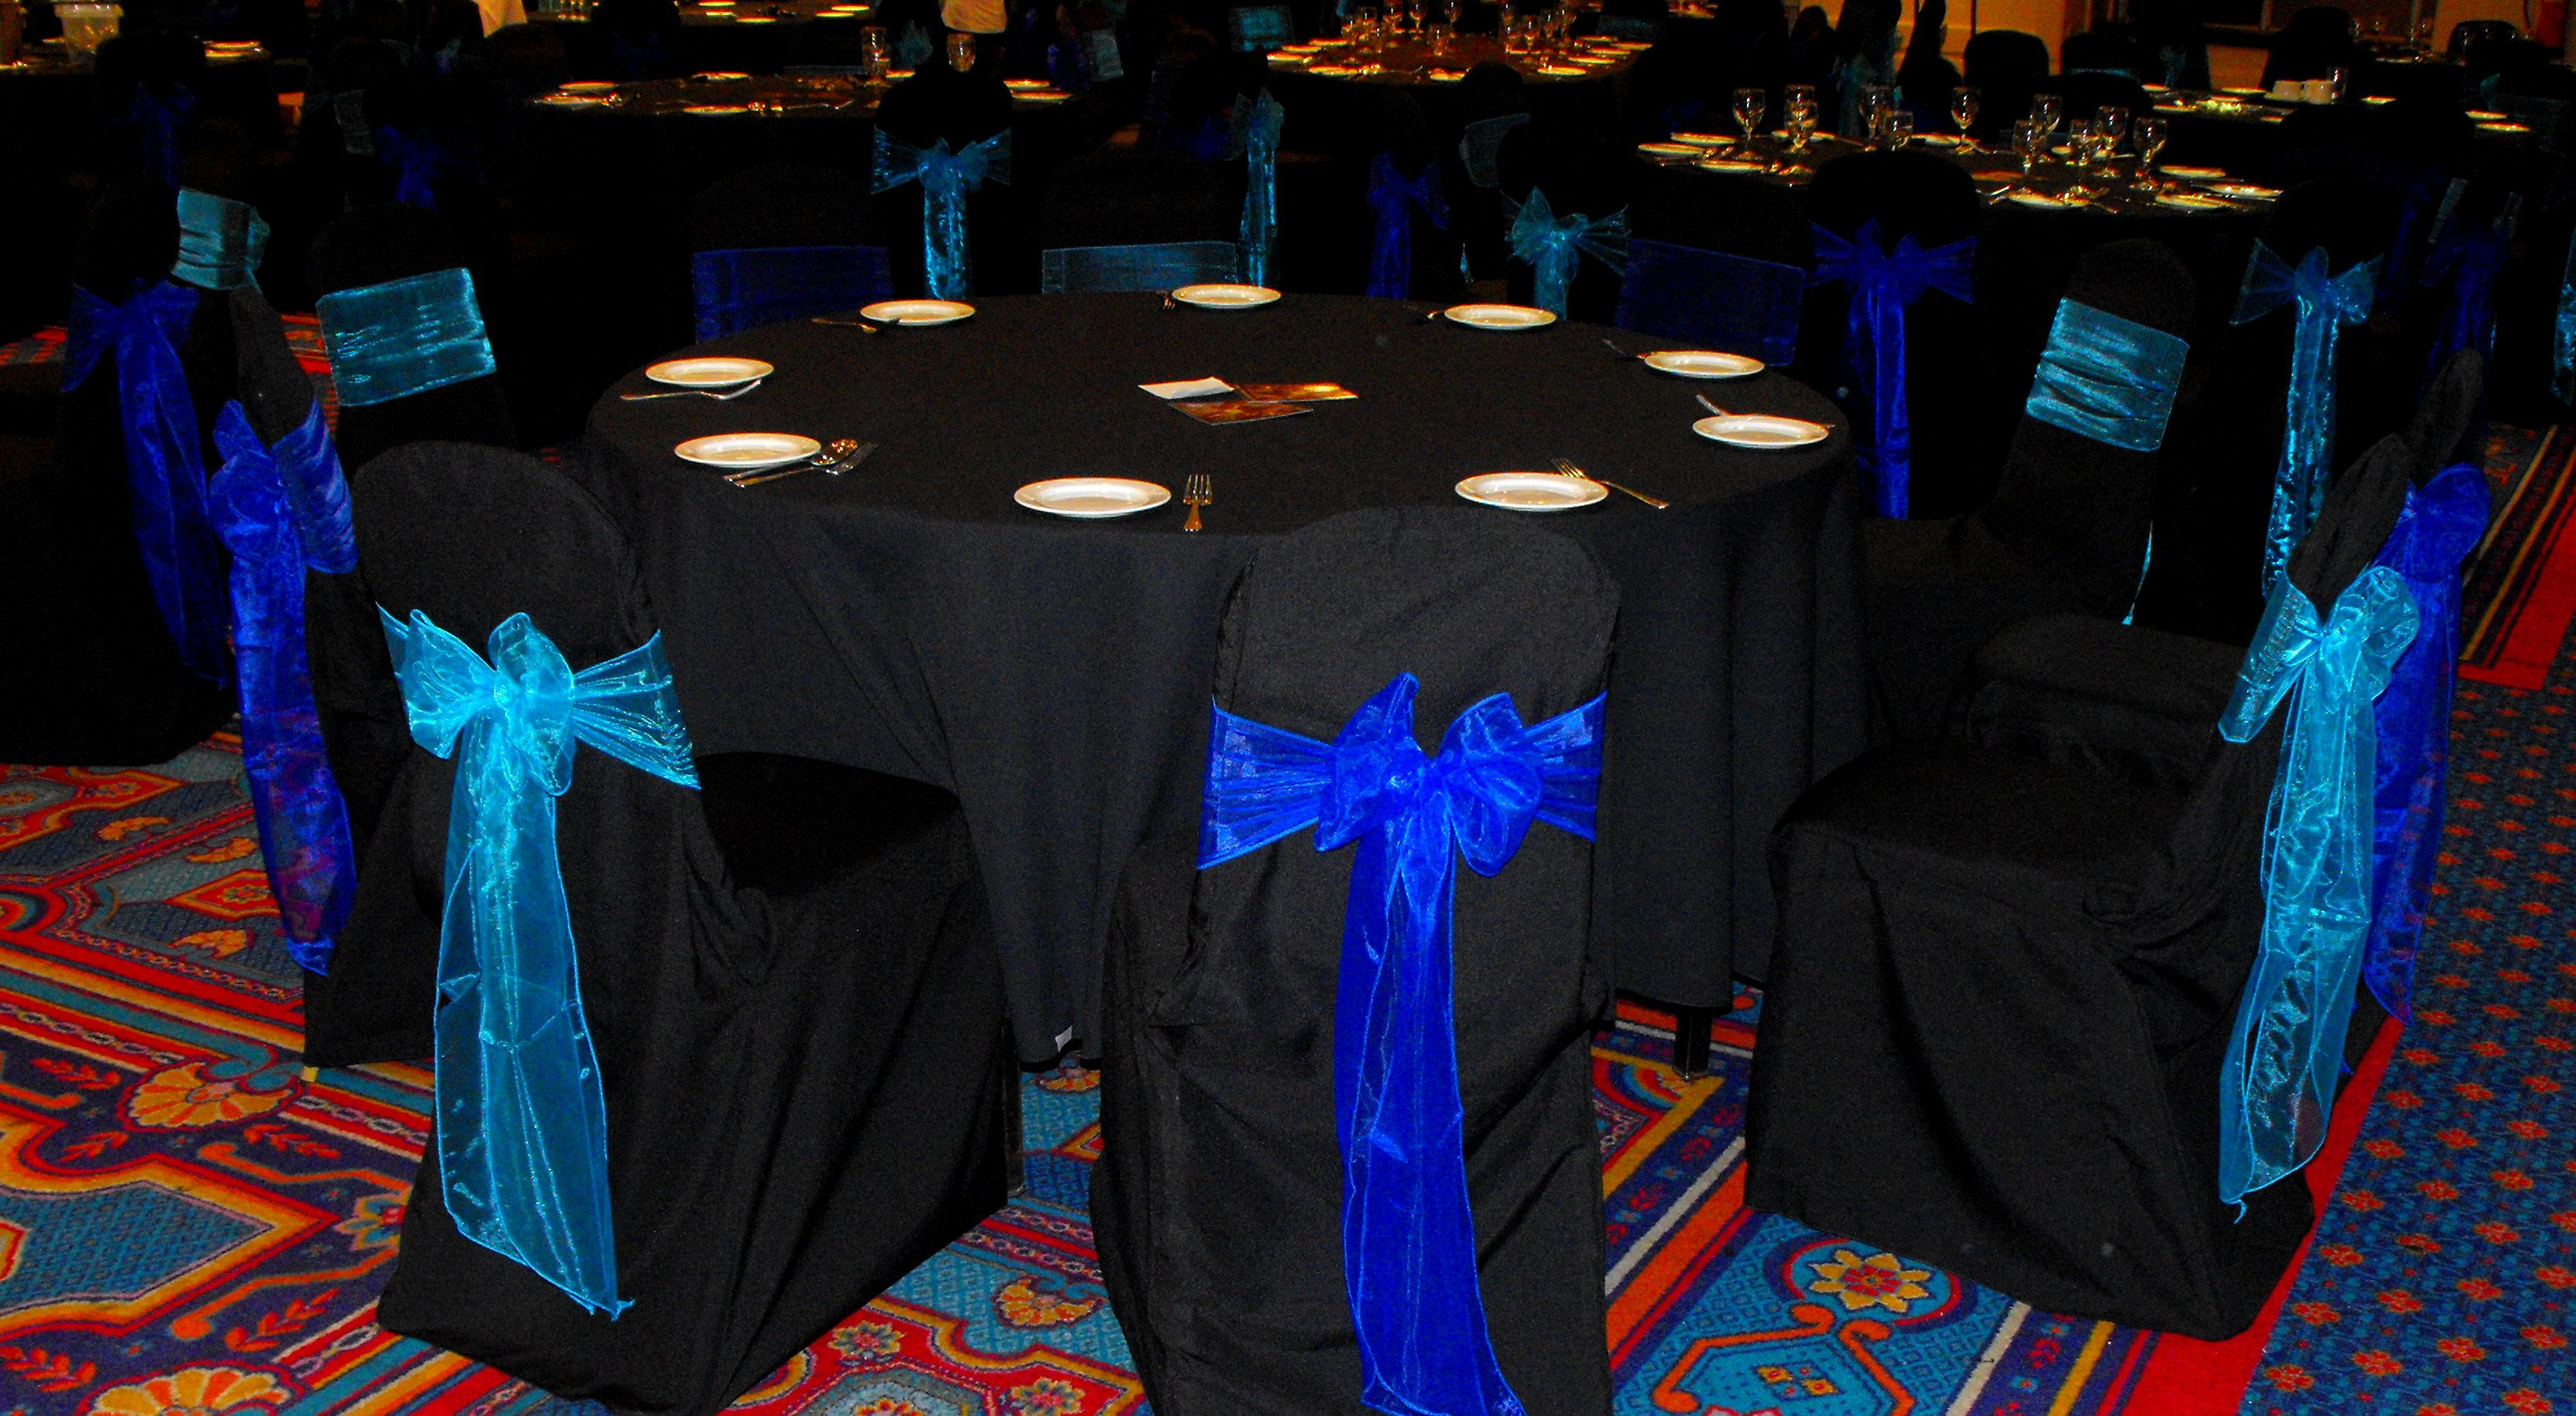 royal blue chair covers ergonomic nsn alternating turquoise and organza on black